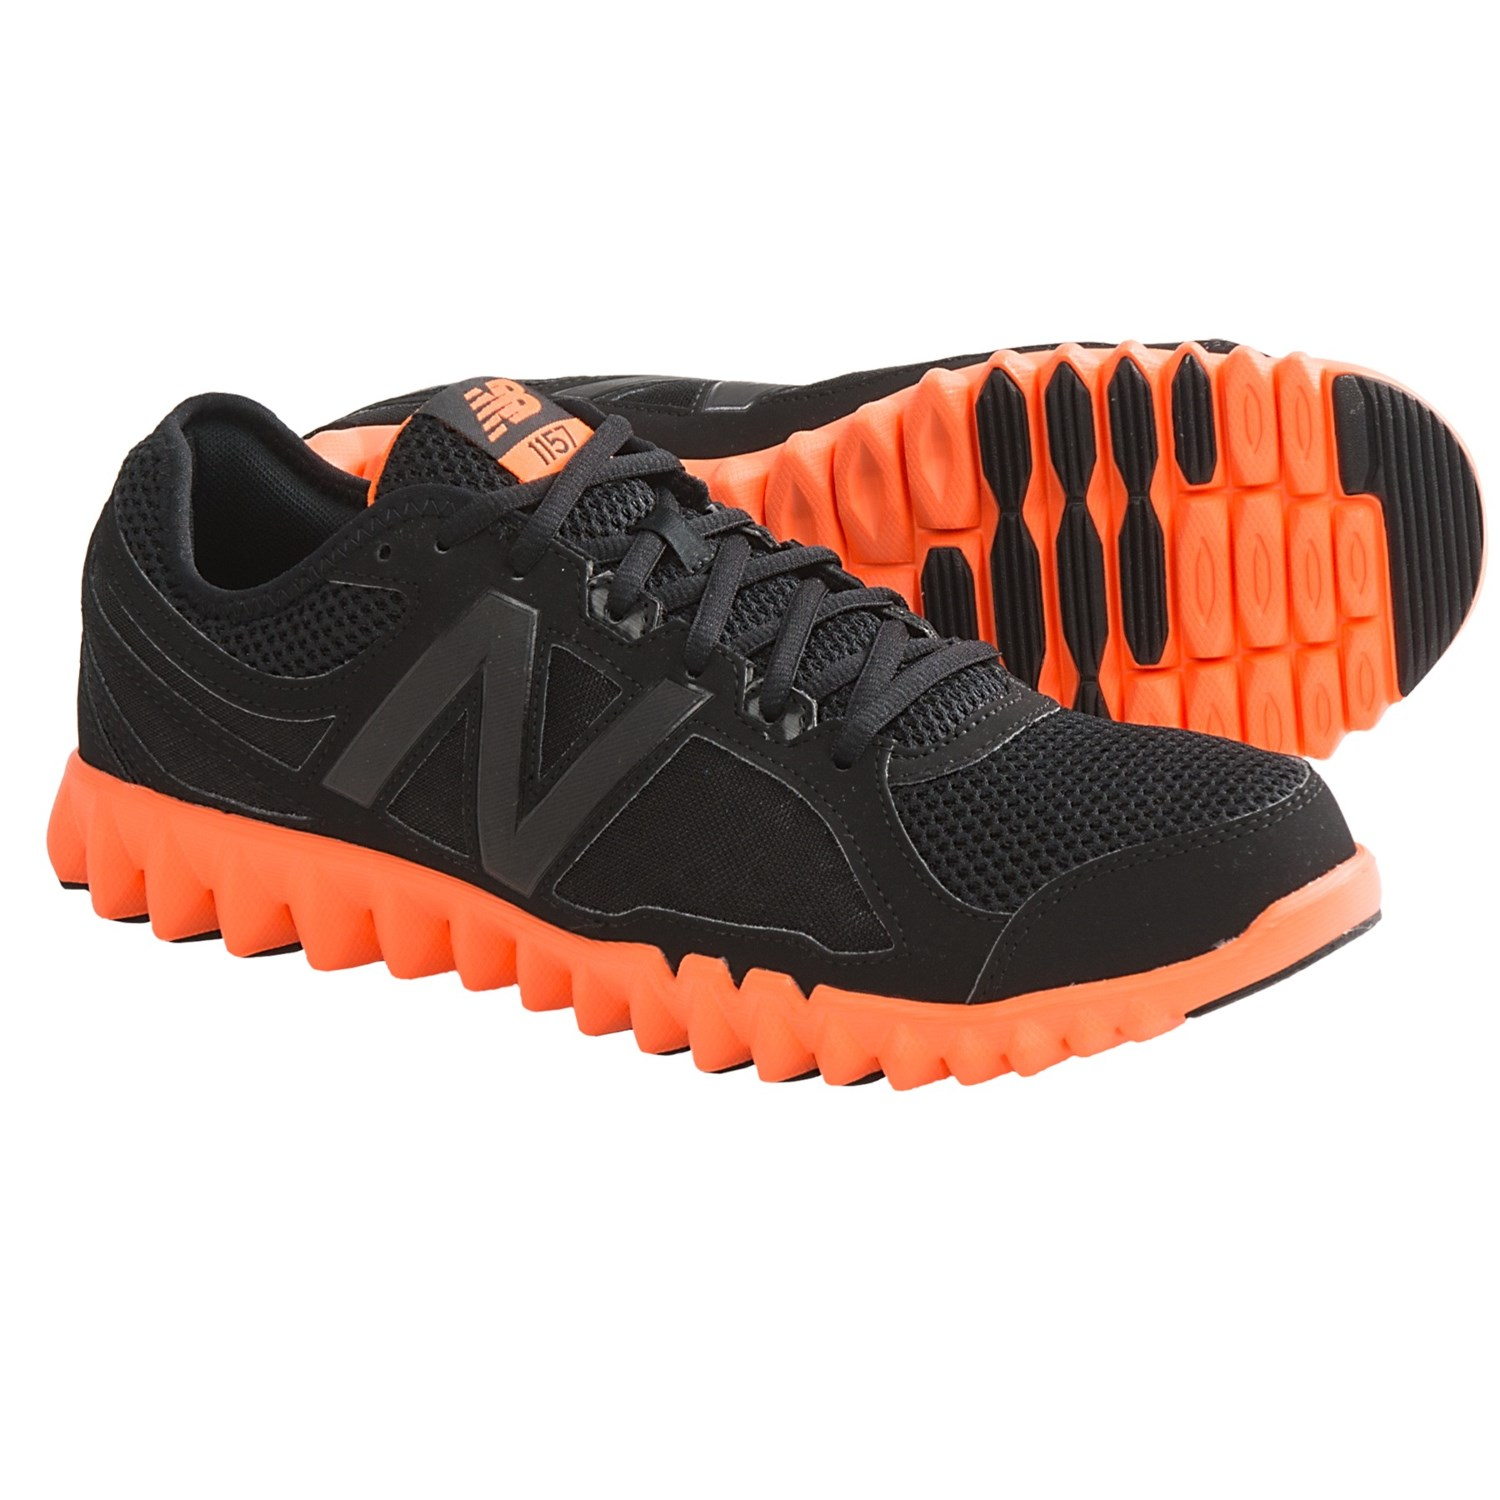 New Balance MX1157 Training Shoes (For Men) in Black/Orange